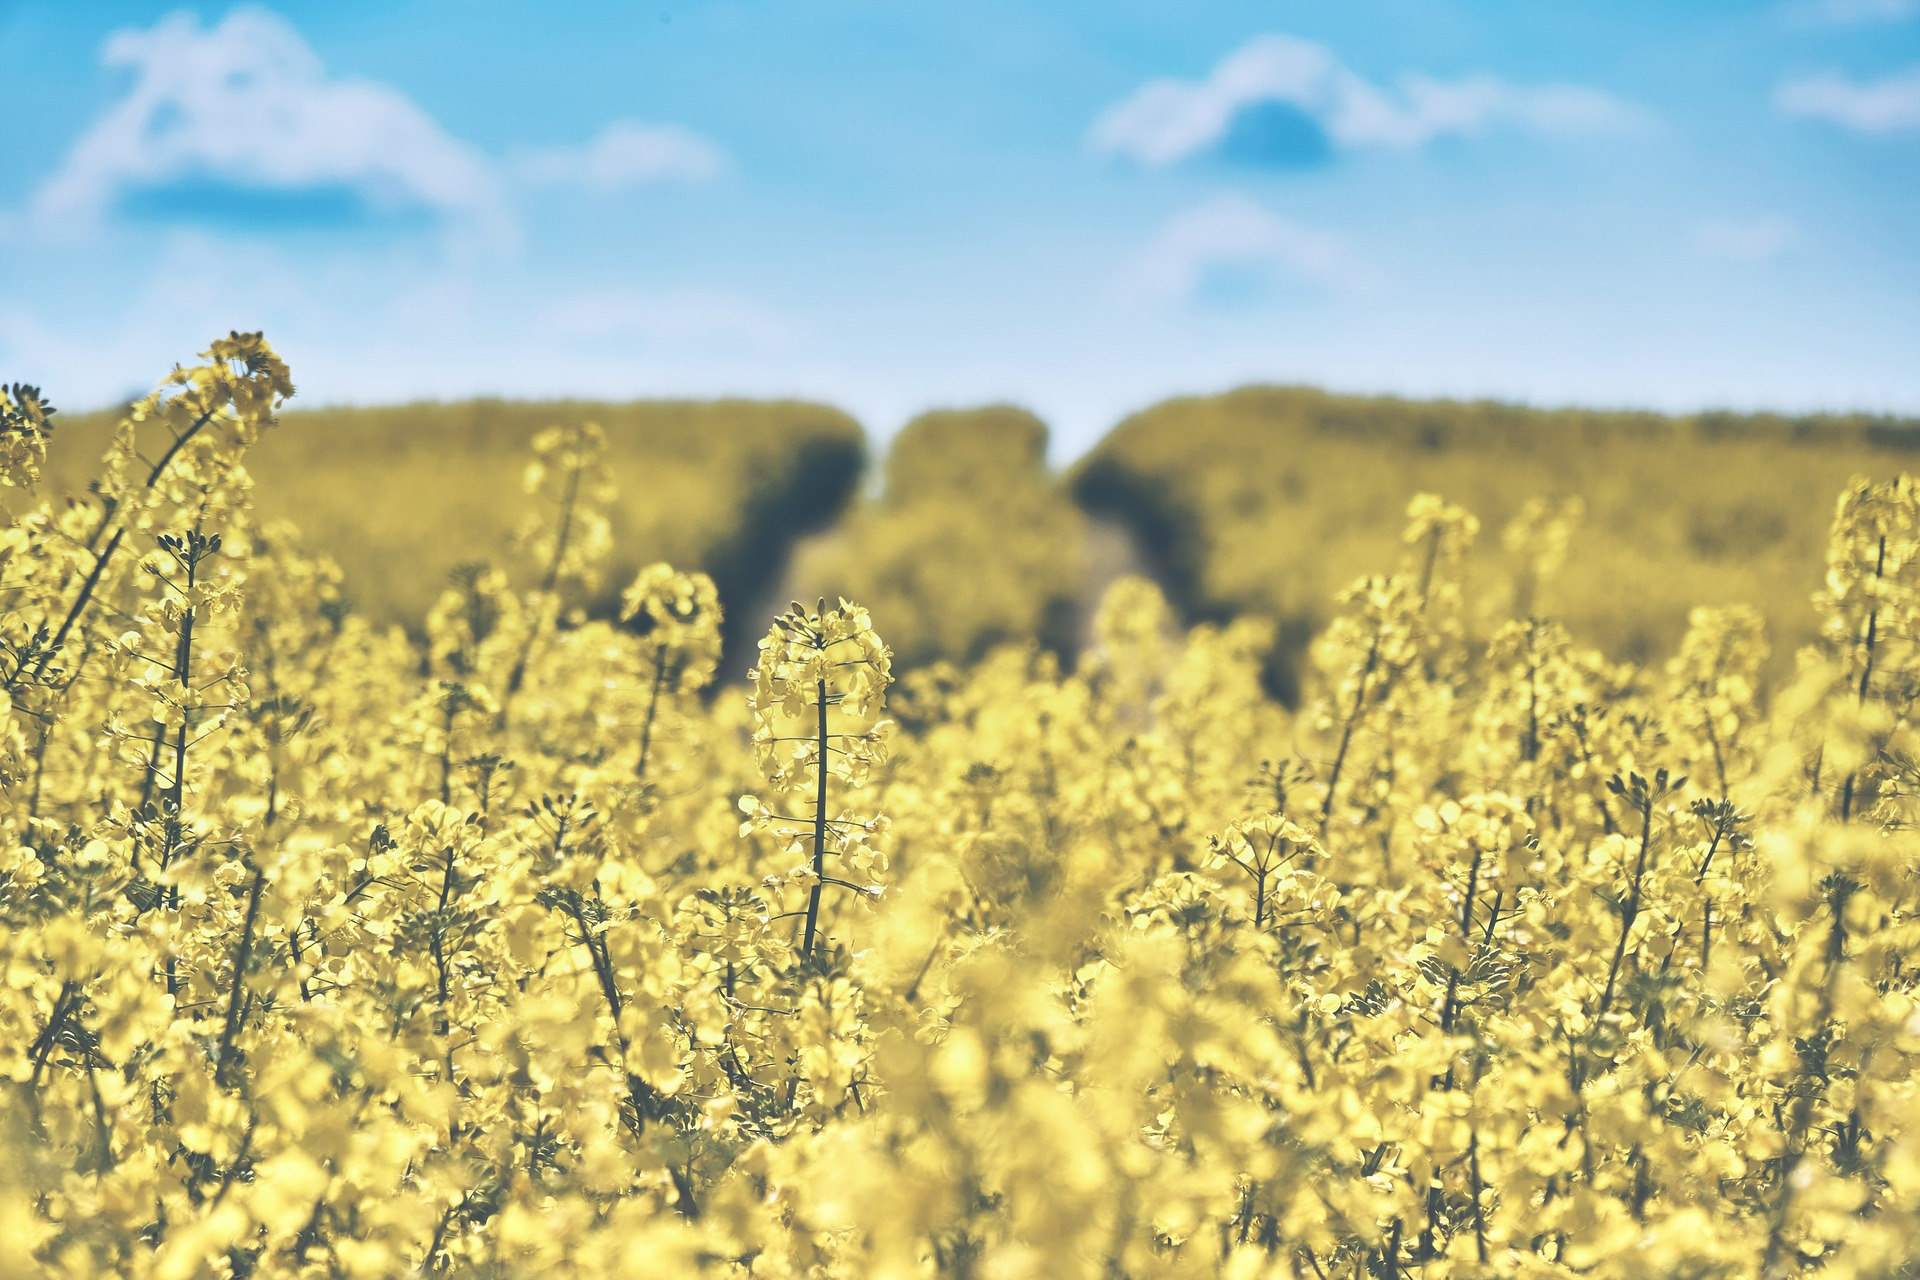 field-of-rapeseeds-1433380_1920